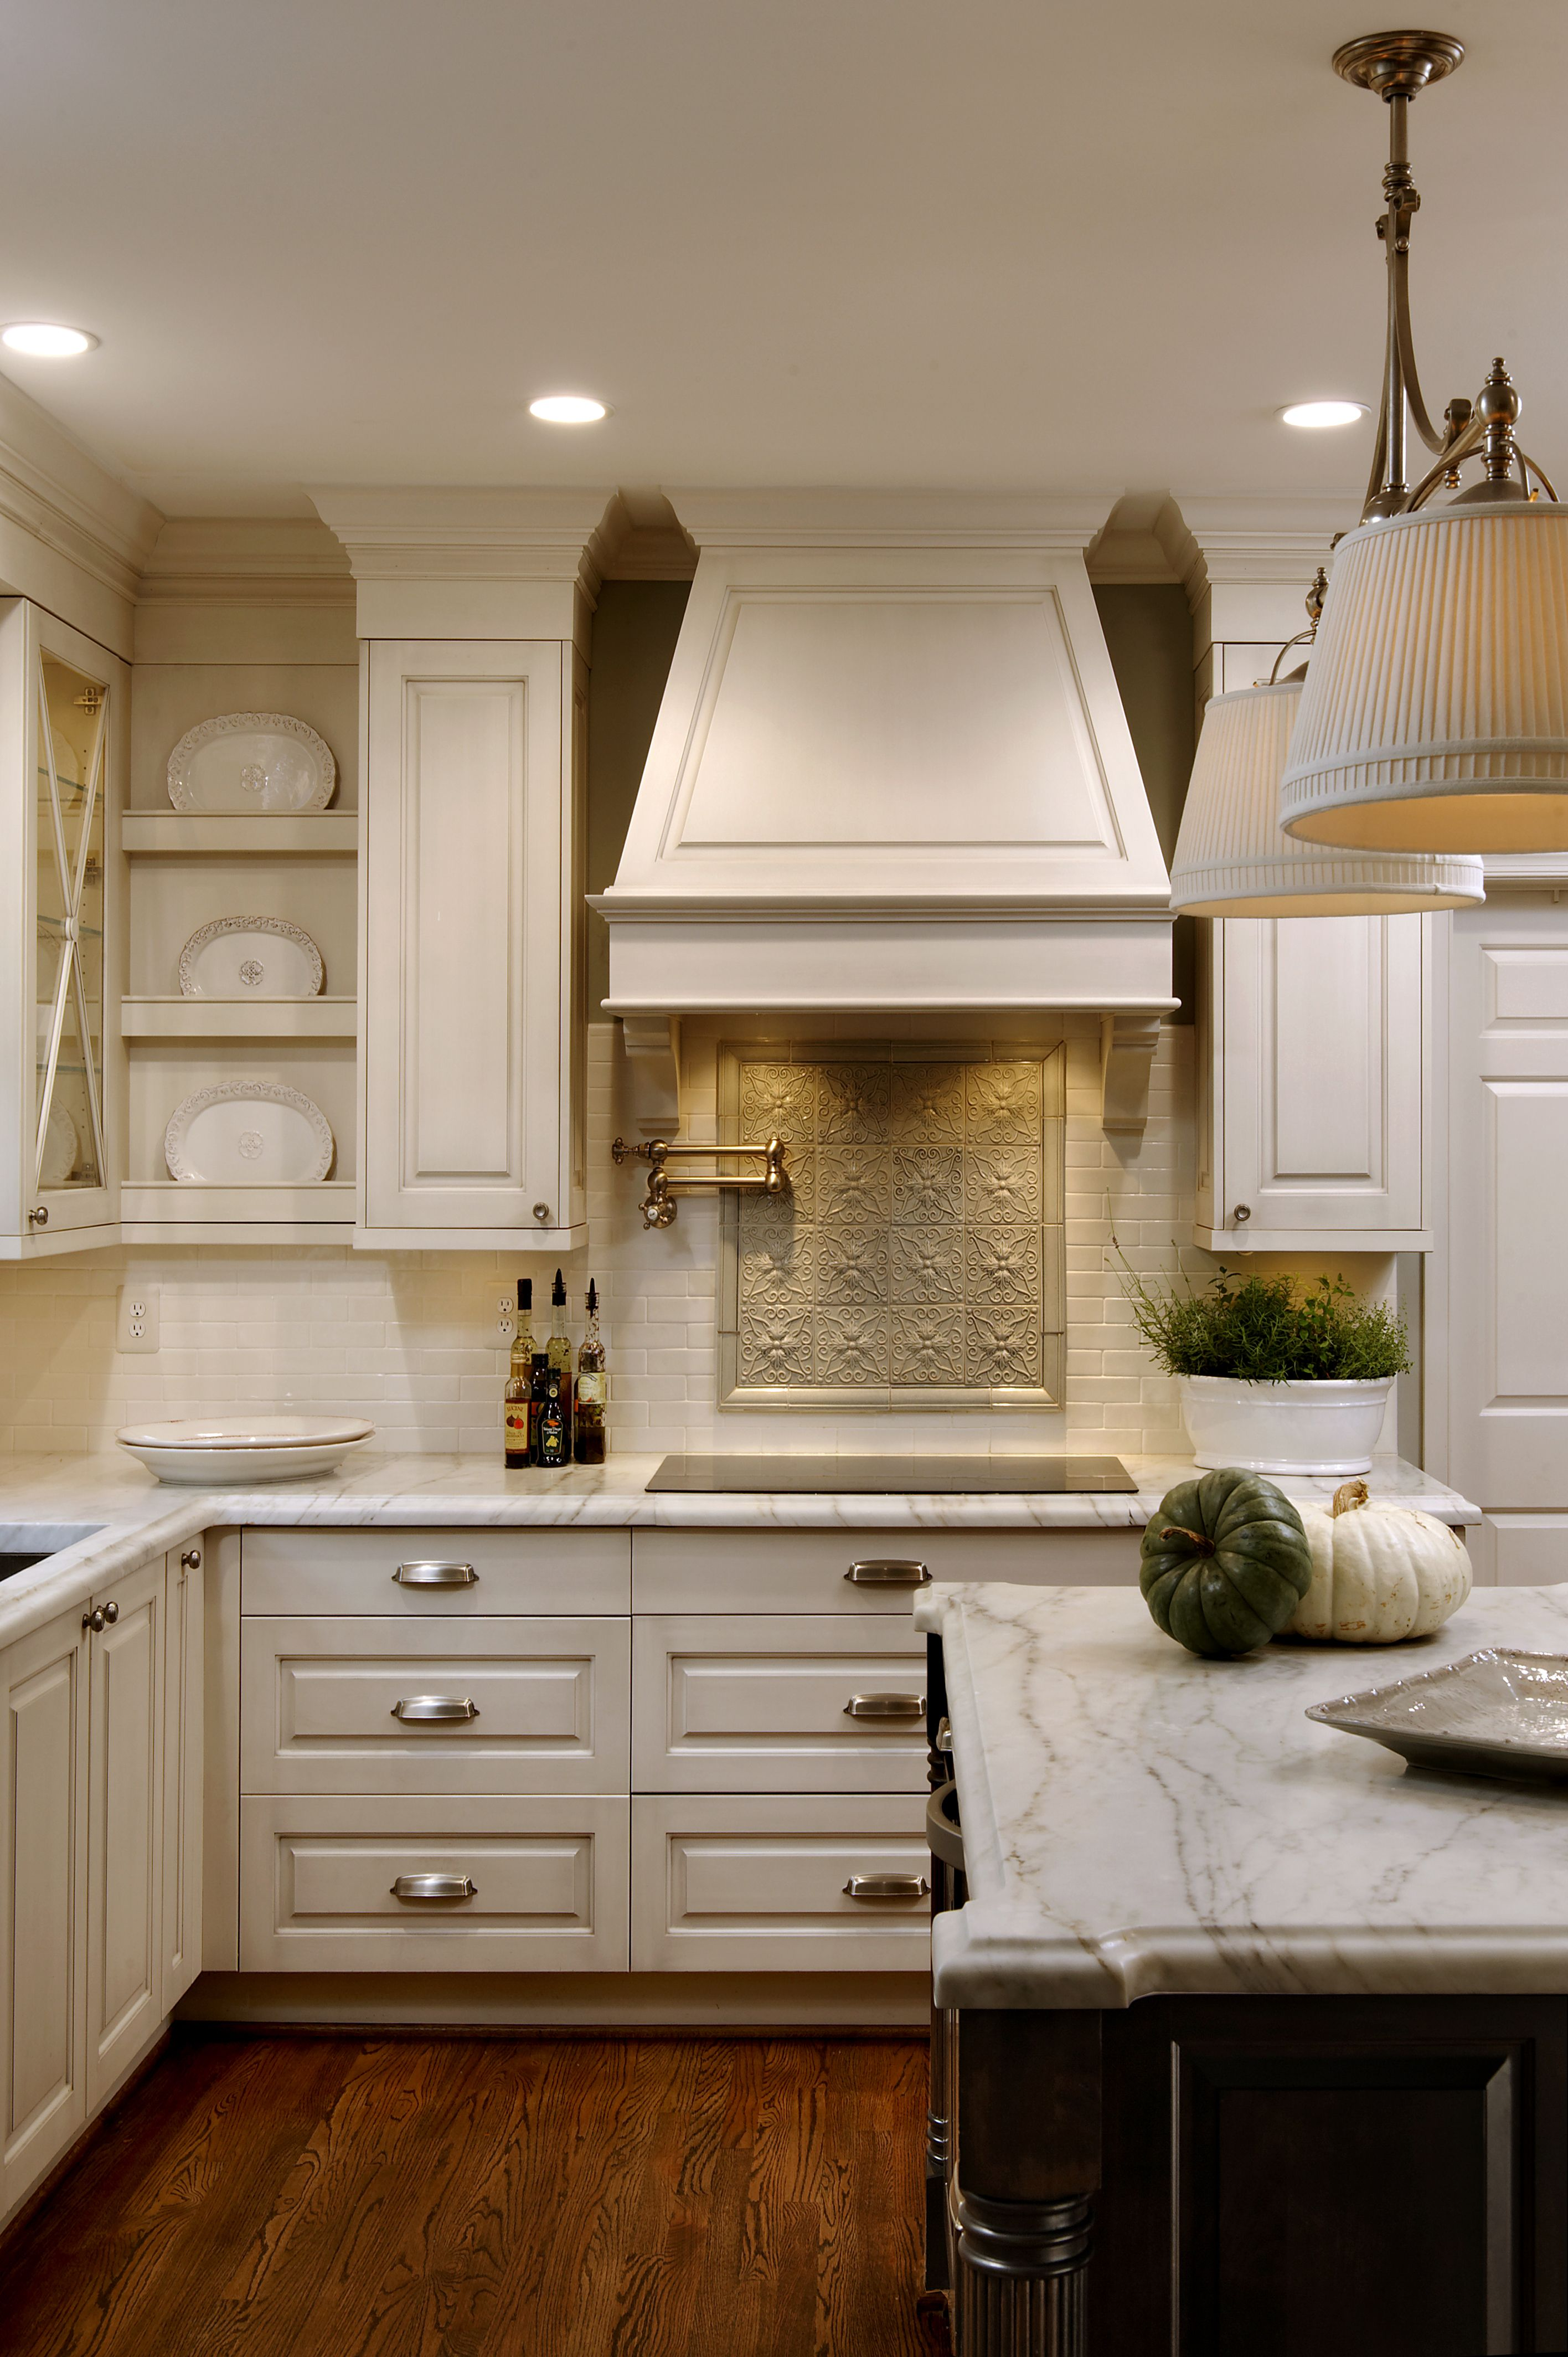 Cream Kitchen With Dark Floors And Dark Island Maybe Grey Island Instead Possibly Darker Countertops Dark Kitchen Floors Kitchen Inspirations Home Kitchens